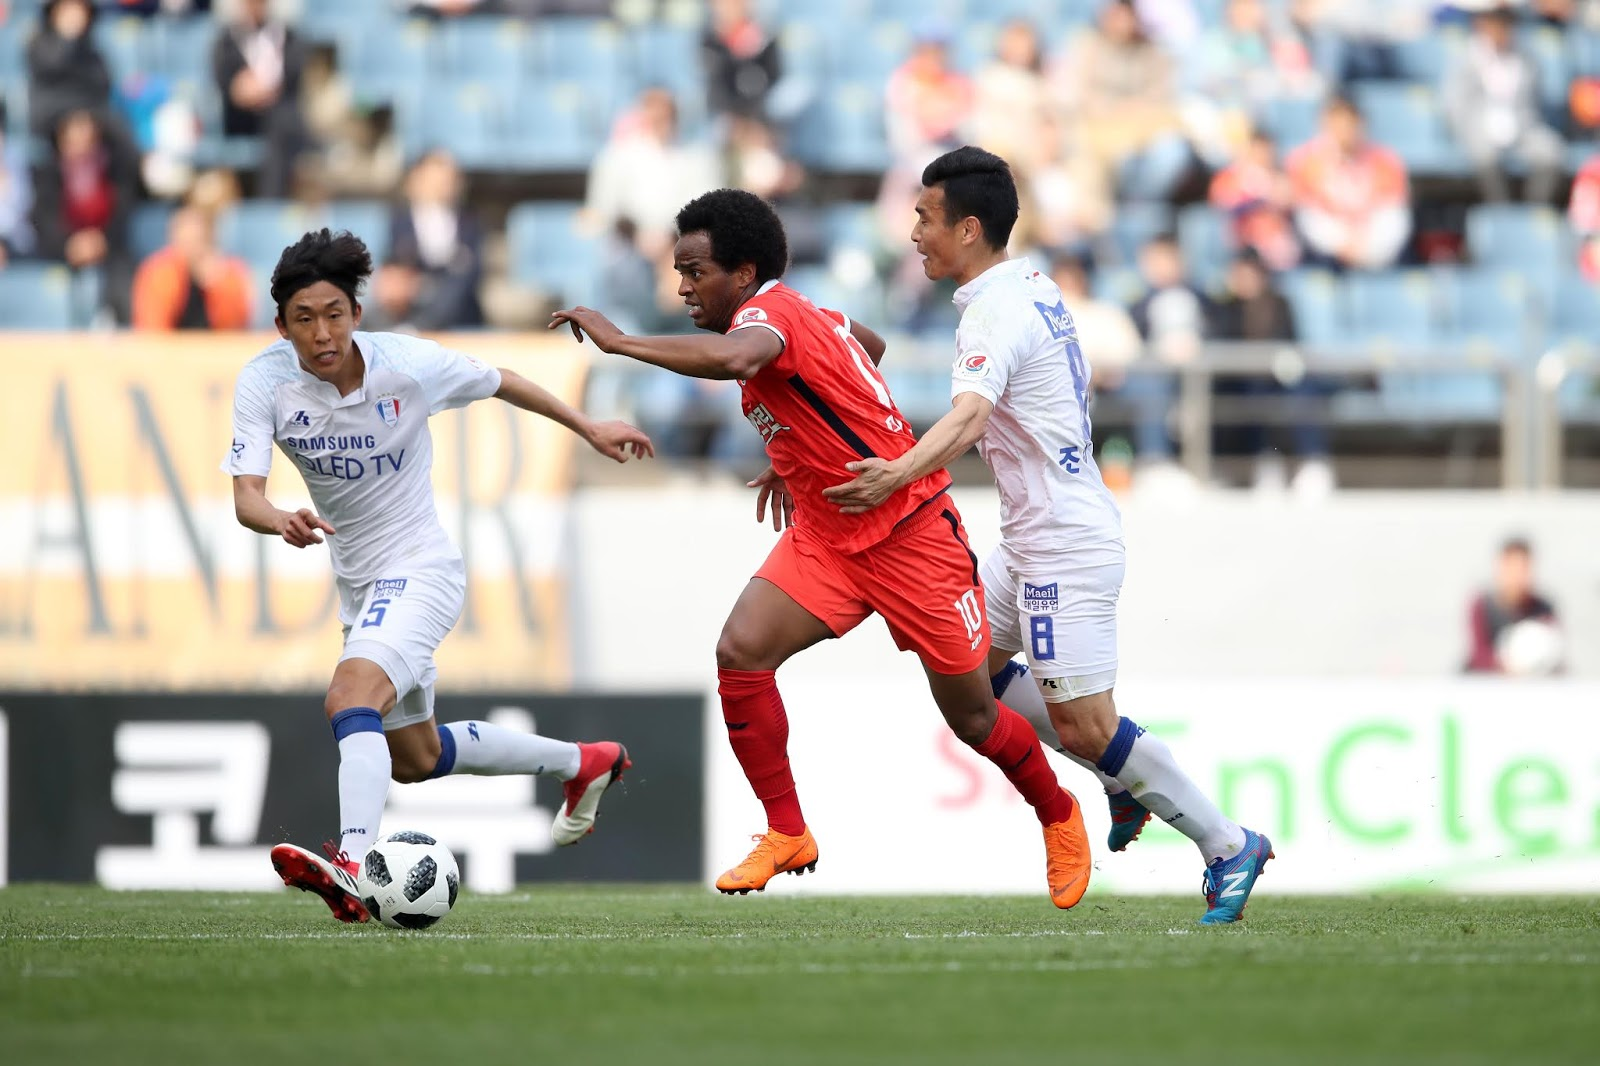 K League 1 Preview: Jeju United vs Suwon Bluewings